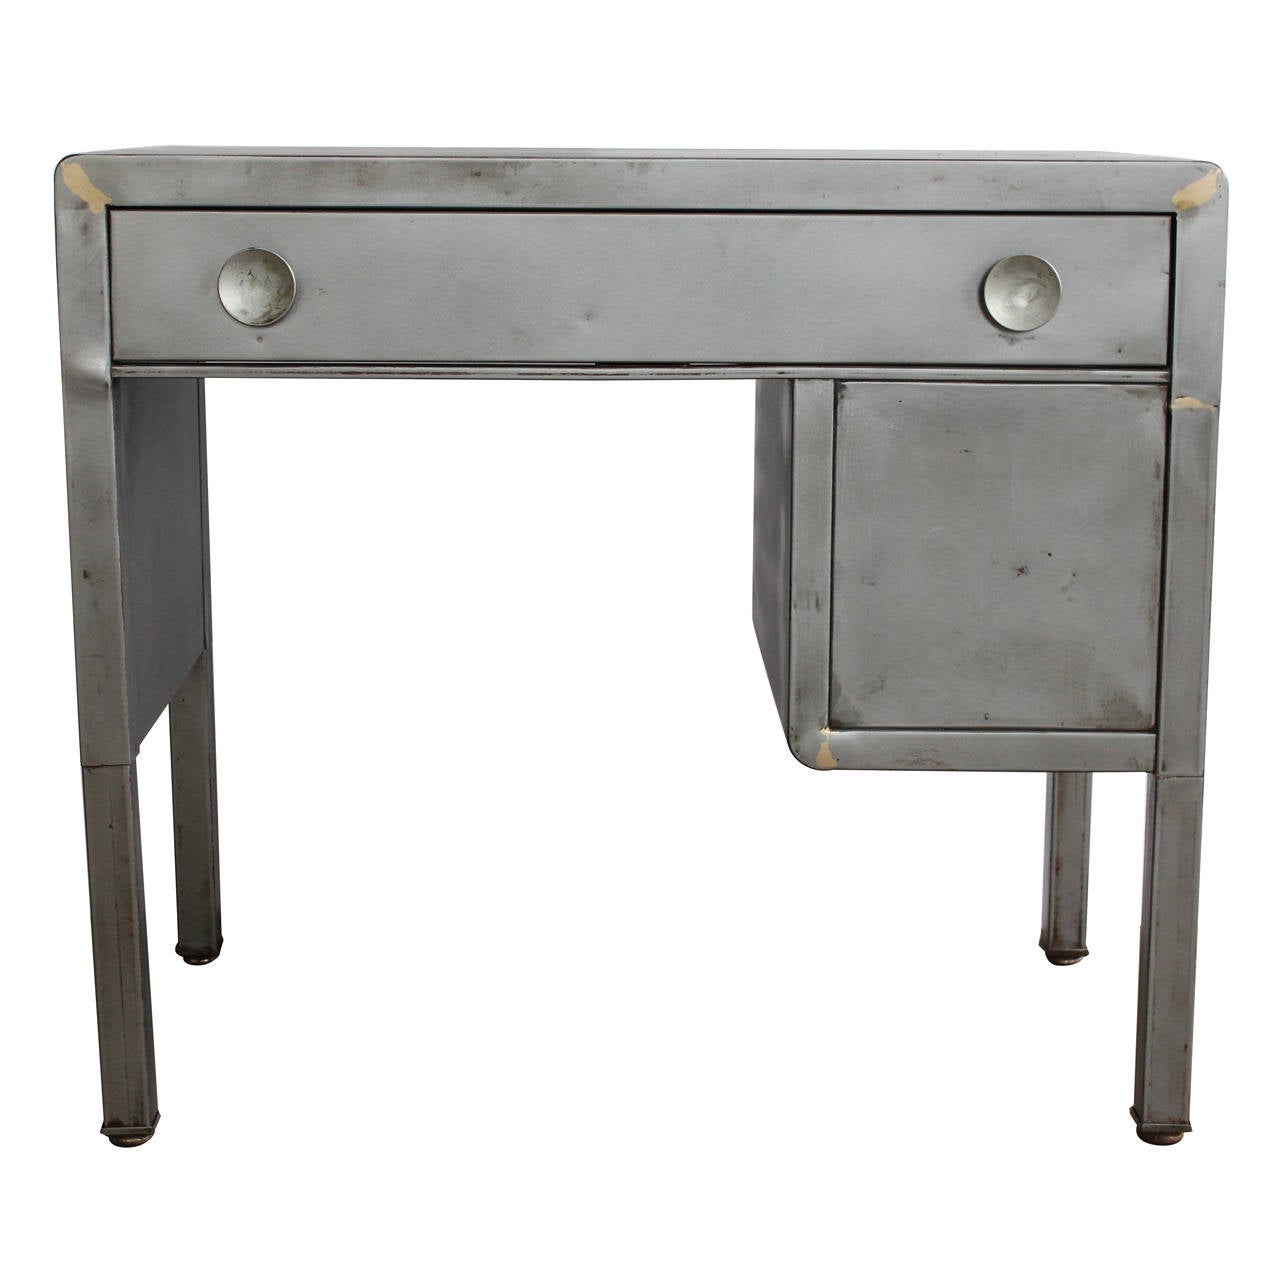 Vintage Industrial Metal Desk By Norman Bel Geddes At 1stdibs